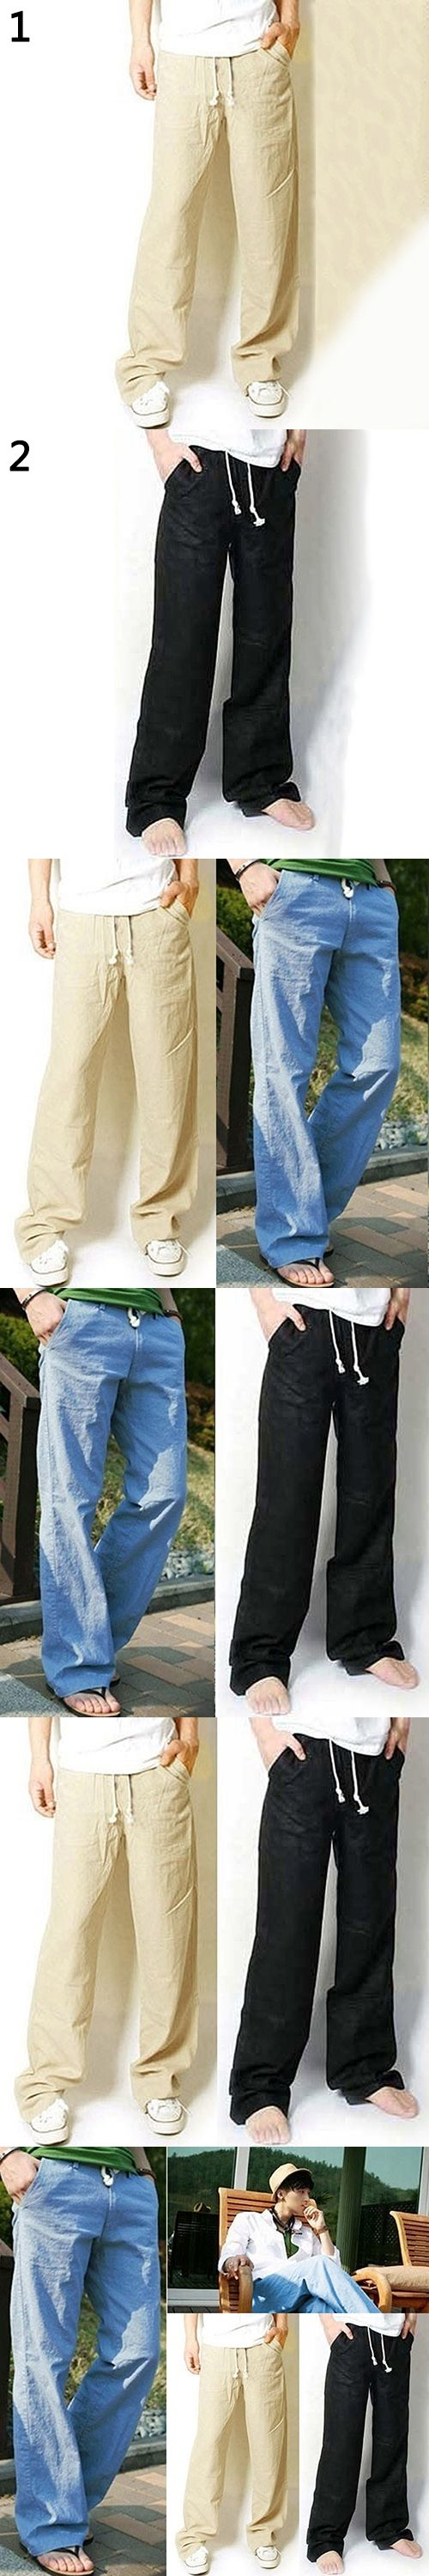 New Arrival Men's Fashion Casual Loose Drawstring Waist Solid Linen Trousers Beach Pants